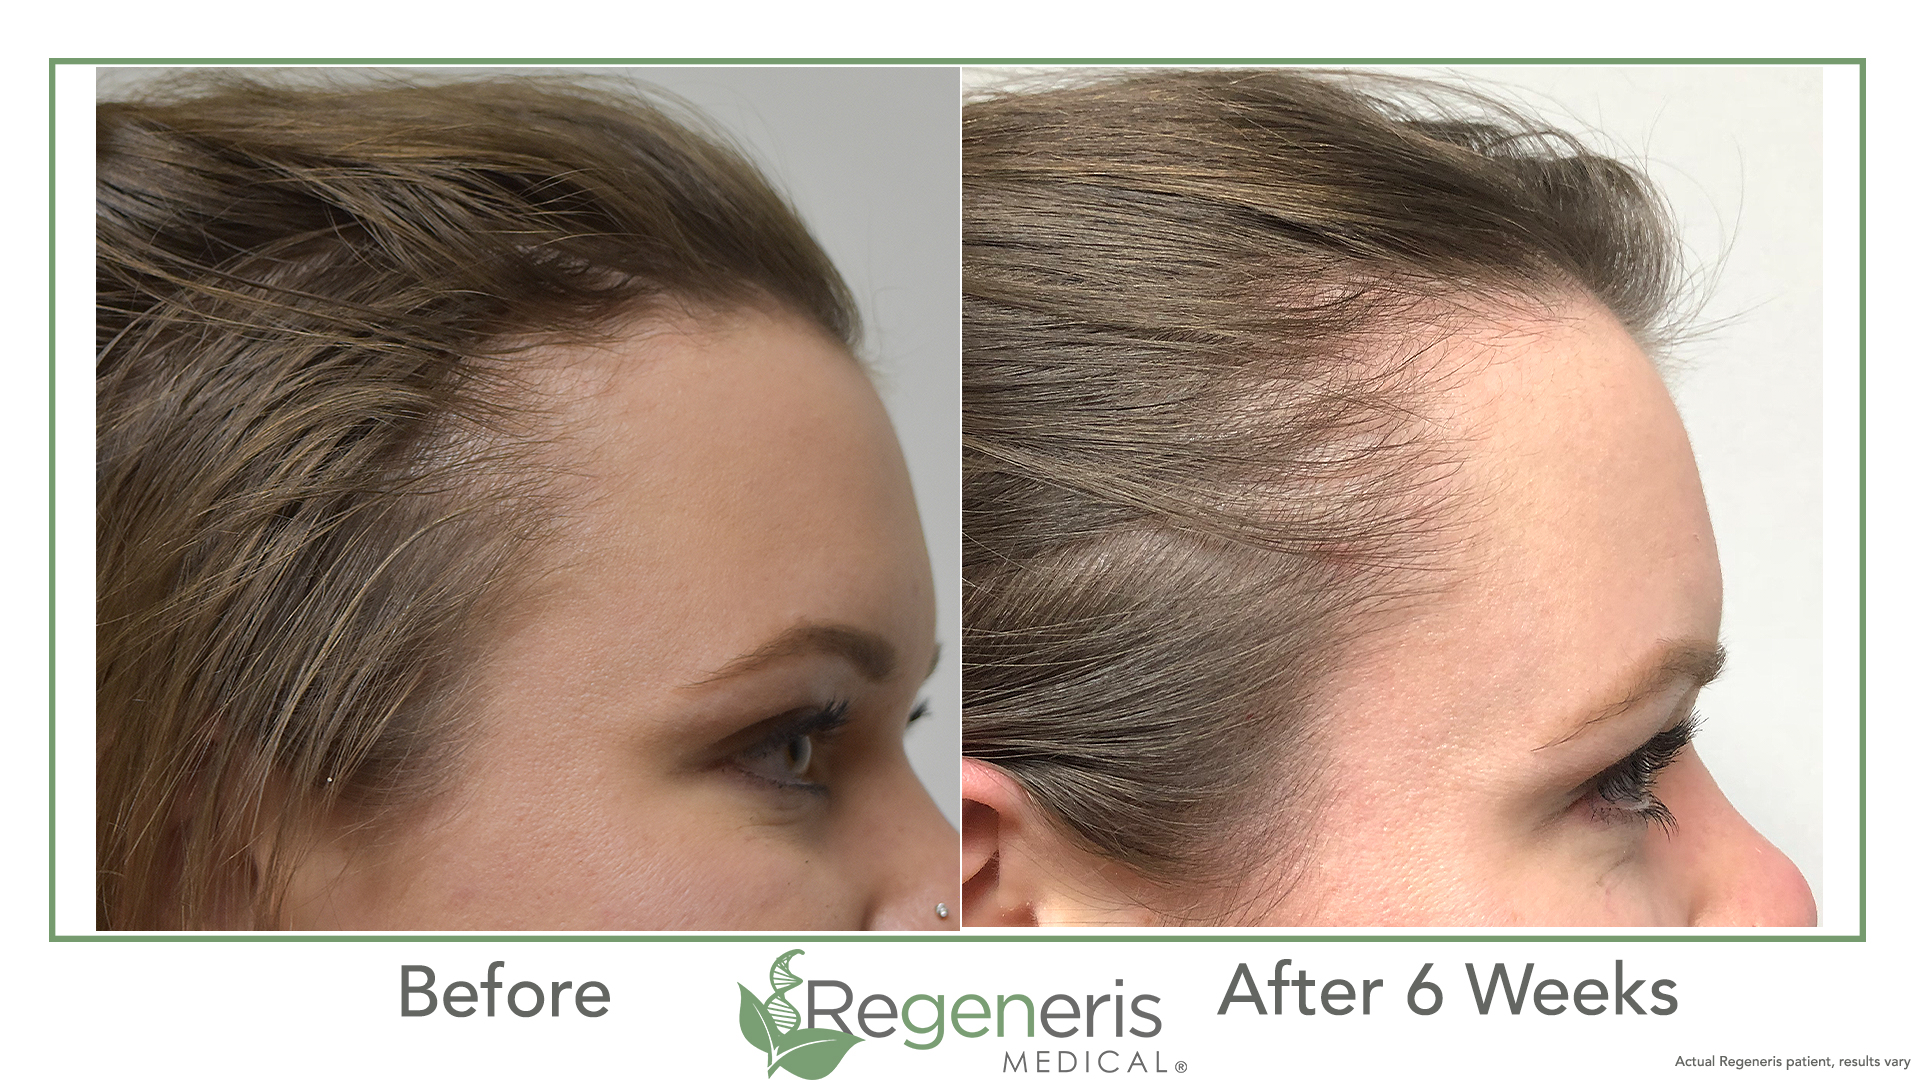 Regeneris HD PRP with Acell - PRP has become a mainstay for slowing hair loss and growing new hair for both men and women, but High Density (HD) PRP has become the new standard thanks to Dr. Welter and the pioneering research of the Regeneris Medical team. Regeneris physicians have performed thousands of HD PRP procedures with outstanding results. The Regeneris HD PRP proprietary technology uses the highest concentration of platelets to ensure an effective burst of growth factors. Peaking at 18 months on average and lasting longer, the Regeneris HD PRP outperforms standard PRP which must be repeated and maintained every 3-4 months.